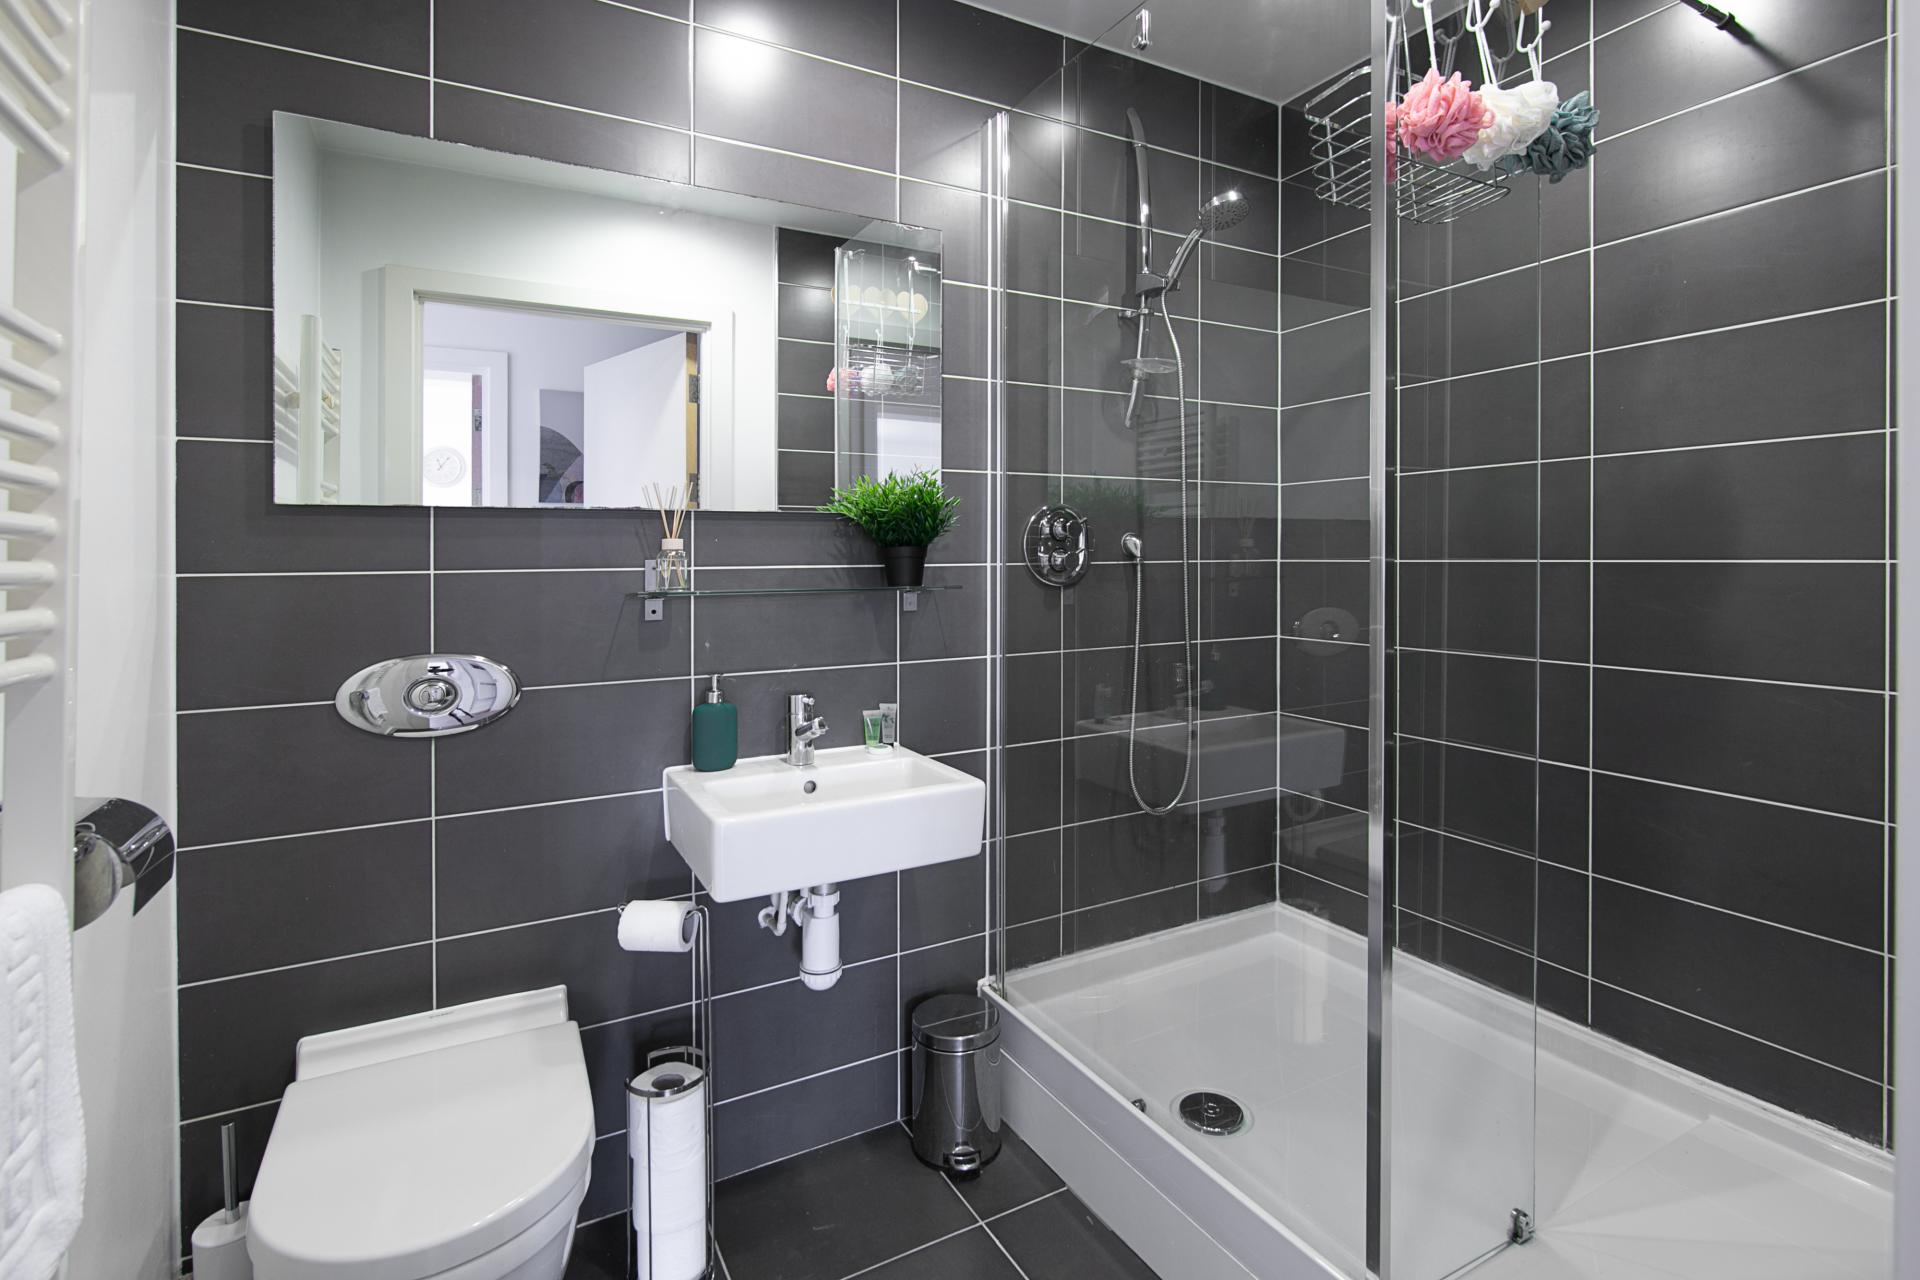 Shower at Canal Muse Apartment, Newtown, Birmingham